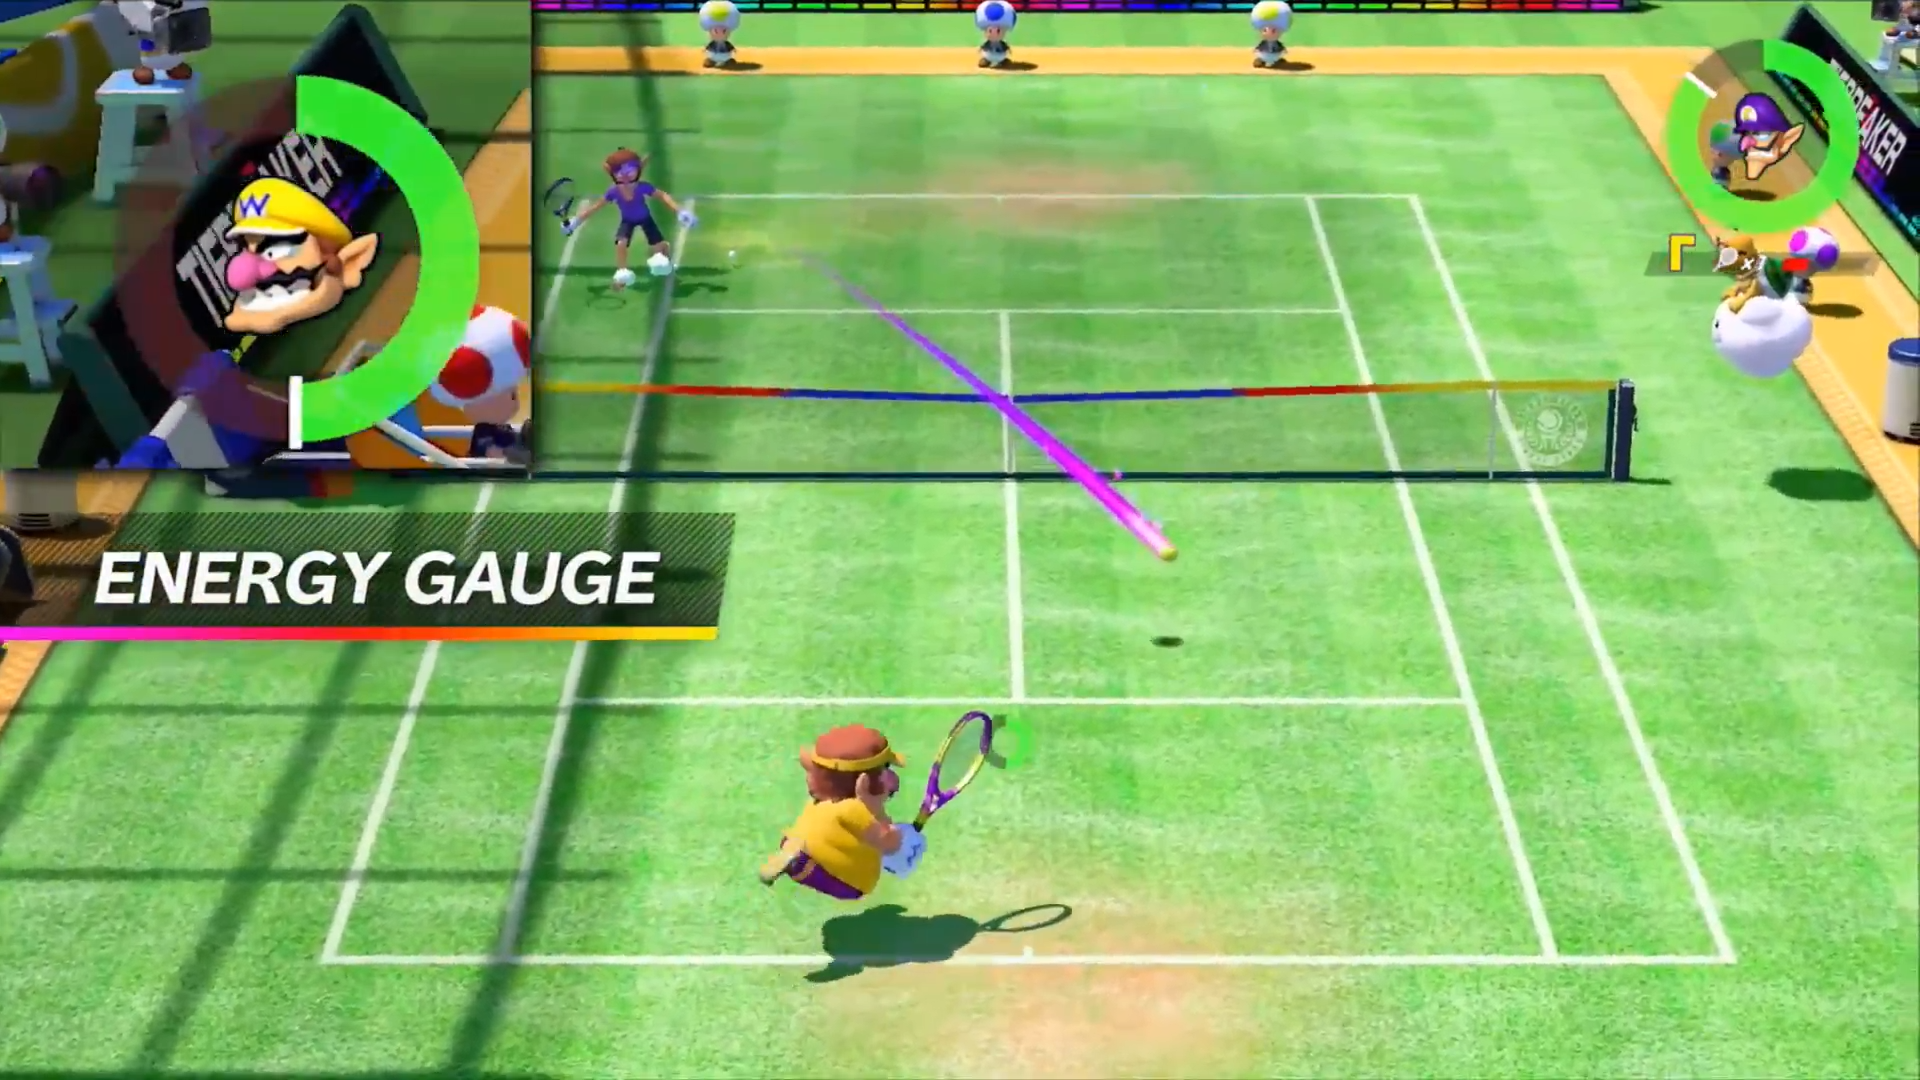 'Mario Tennis Aces' Release Date, Characters Leak Ahead of Nintendo Direct